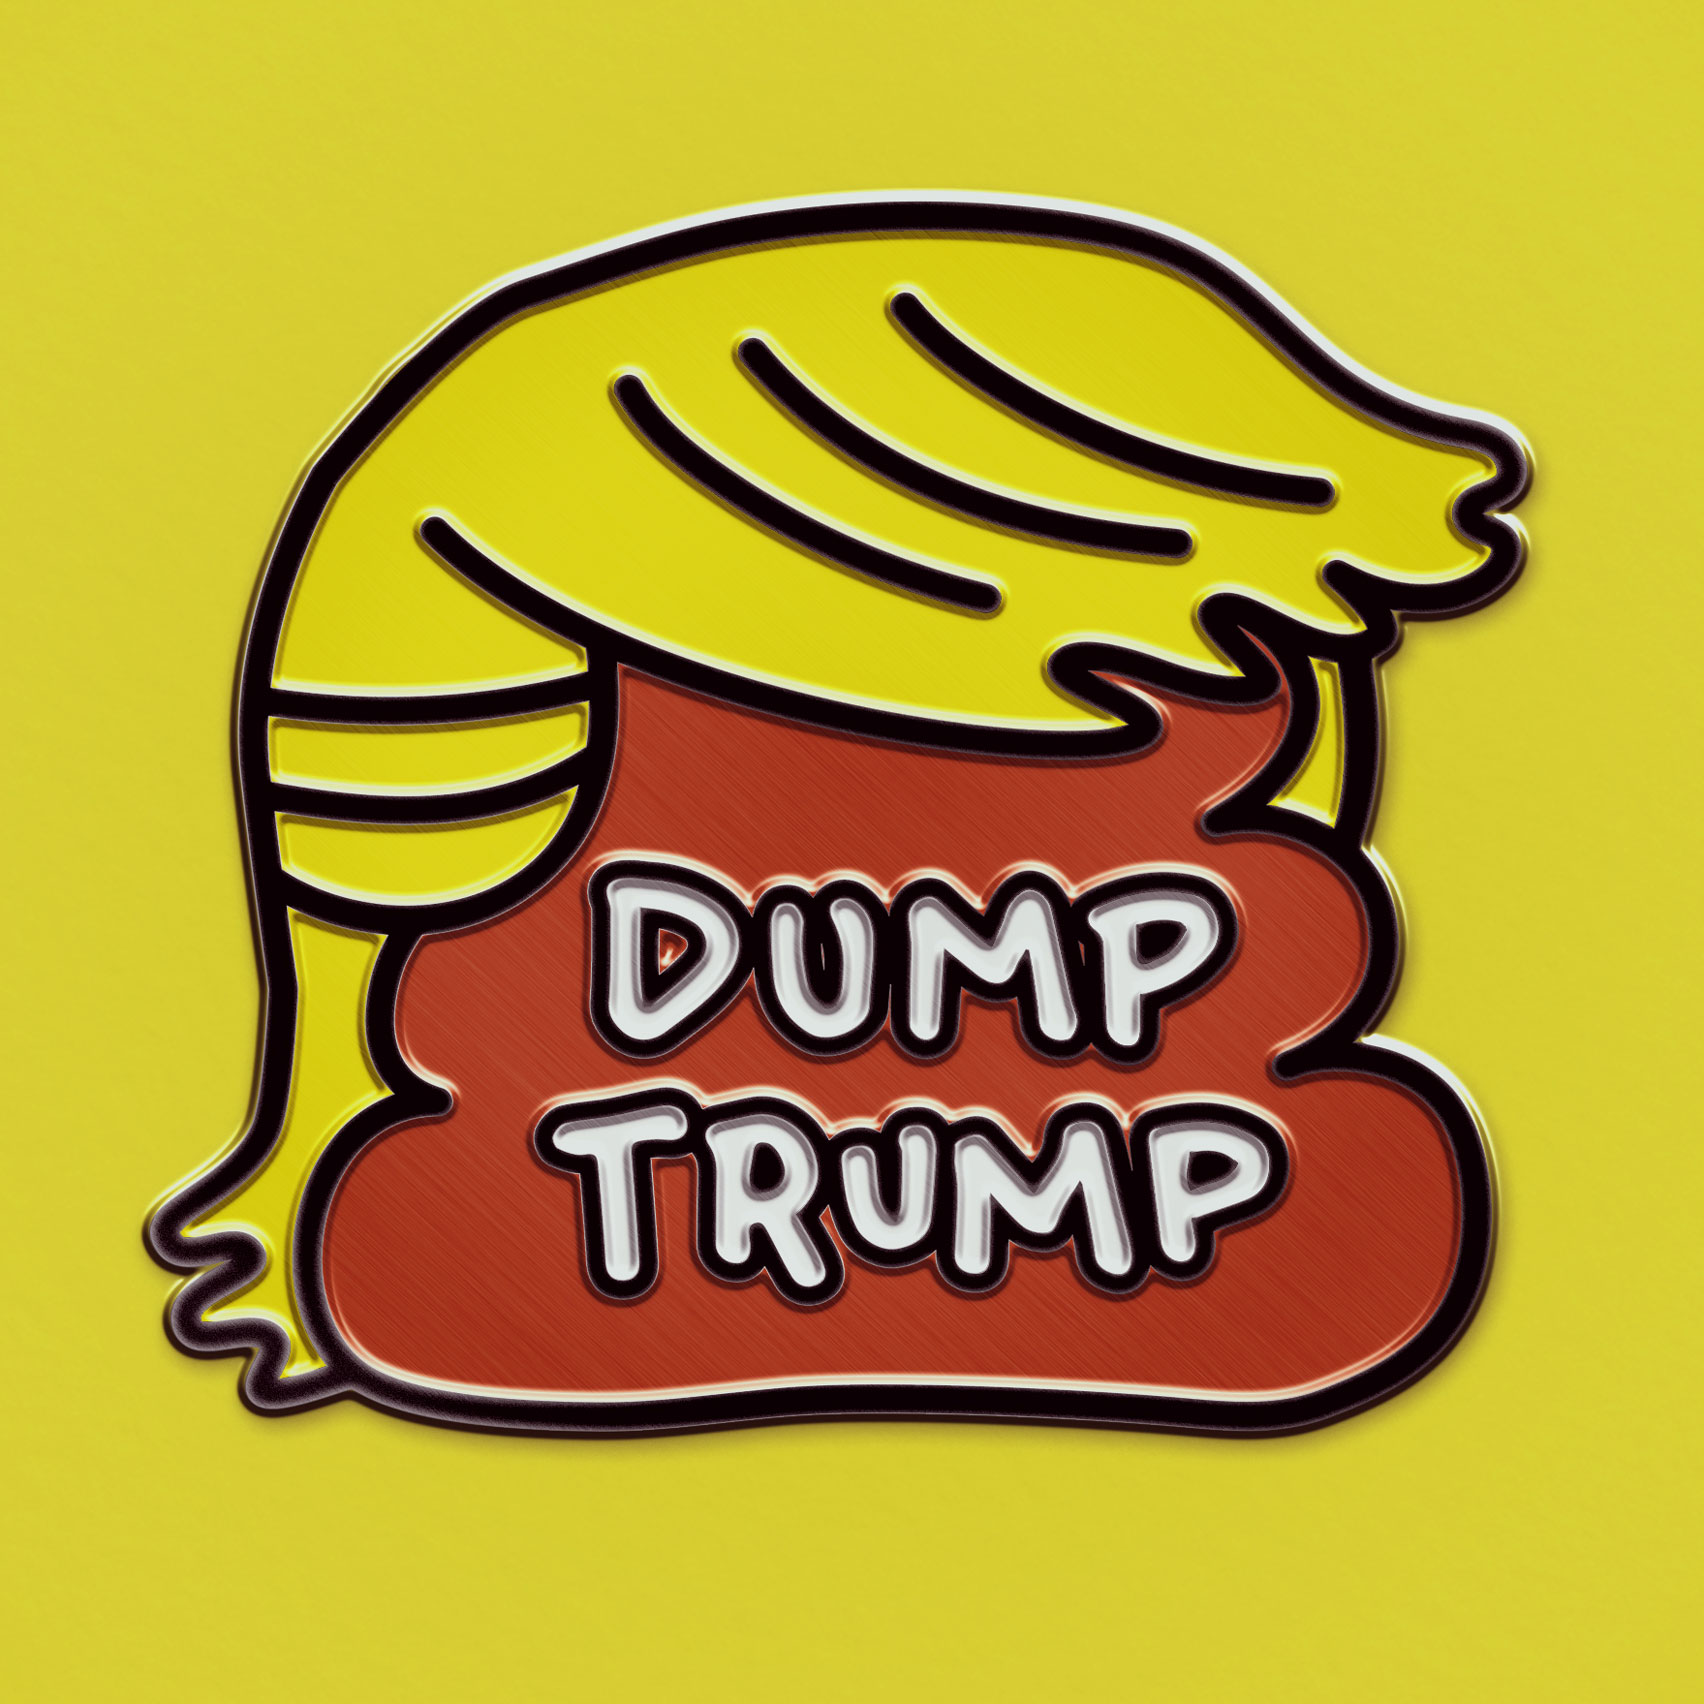 Dump Trump pin by Sagmeister & Walsh